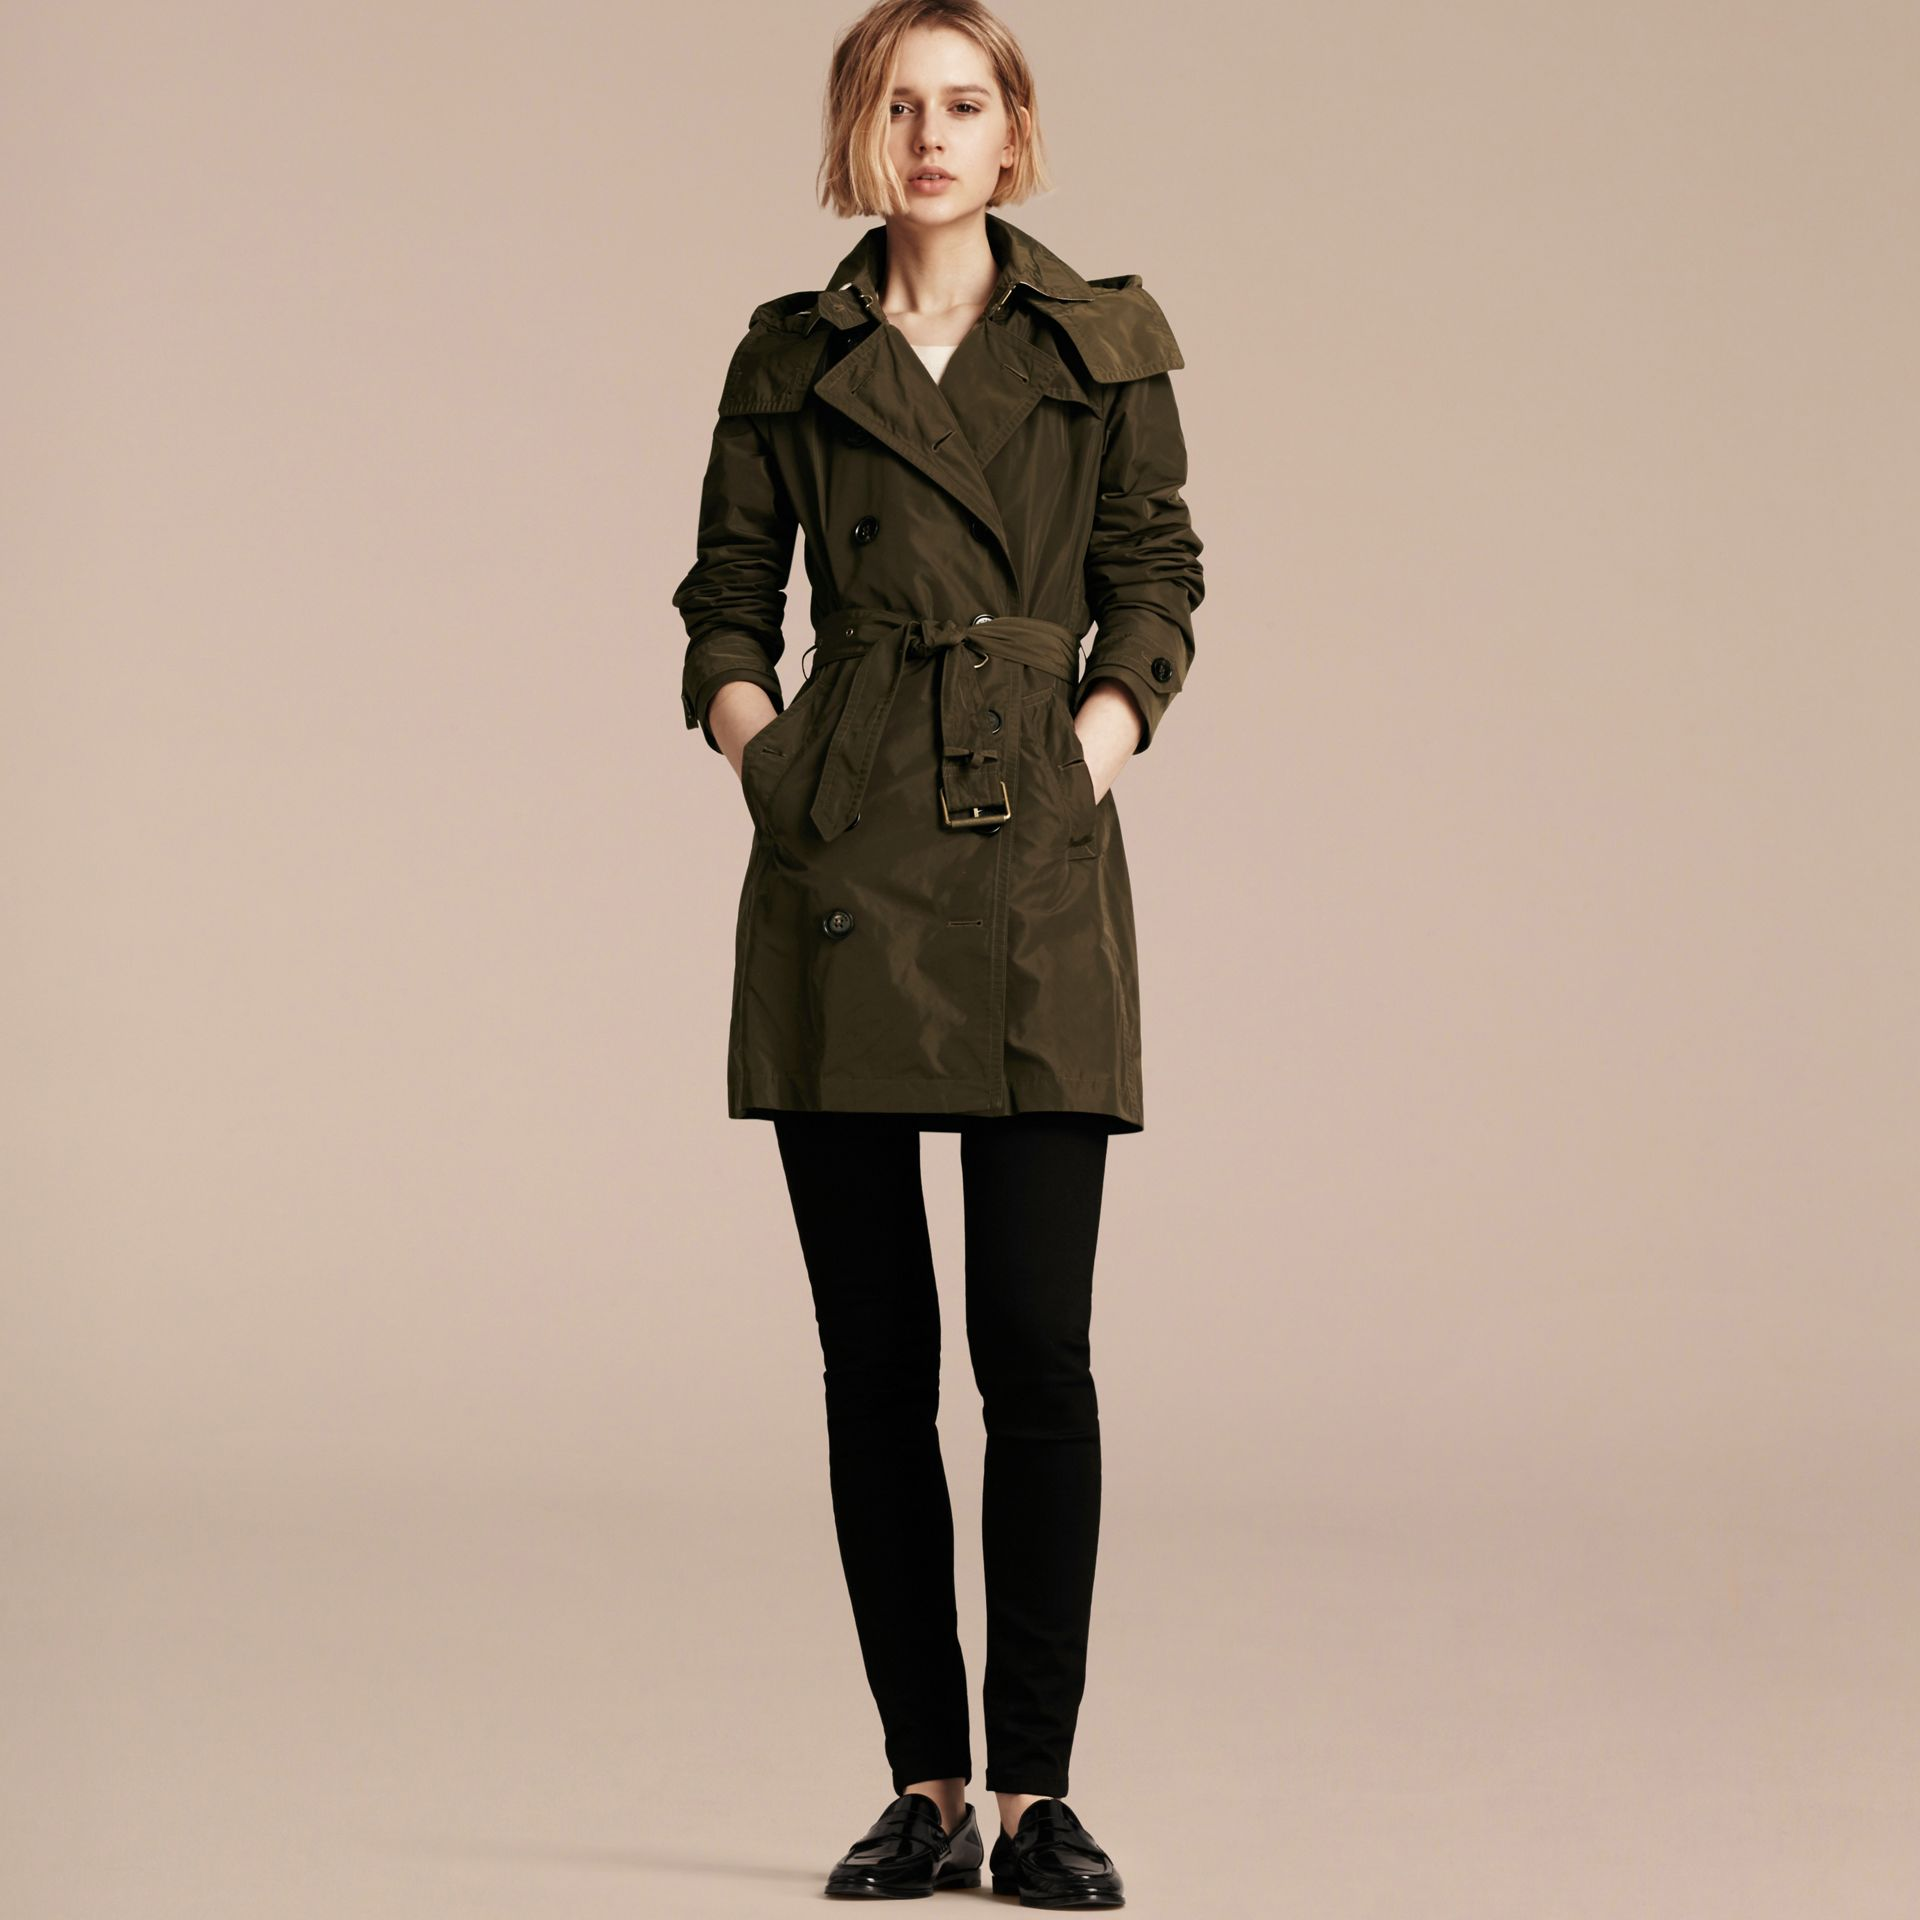 Taffeta Trench Coat with Detachable Hood in Dark Olive - Women | Burberry - gallery image 1